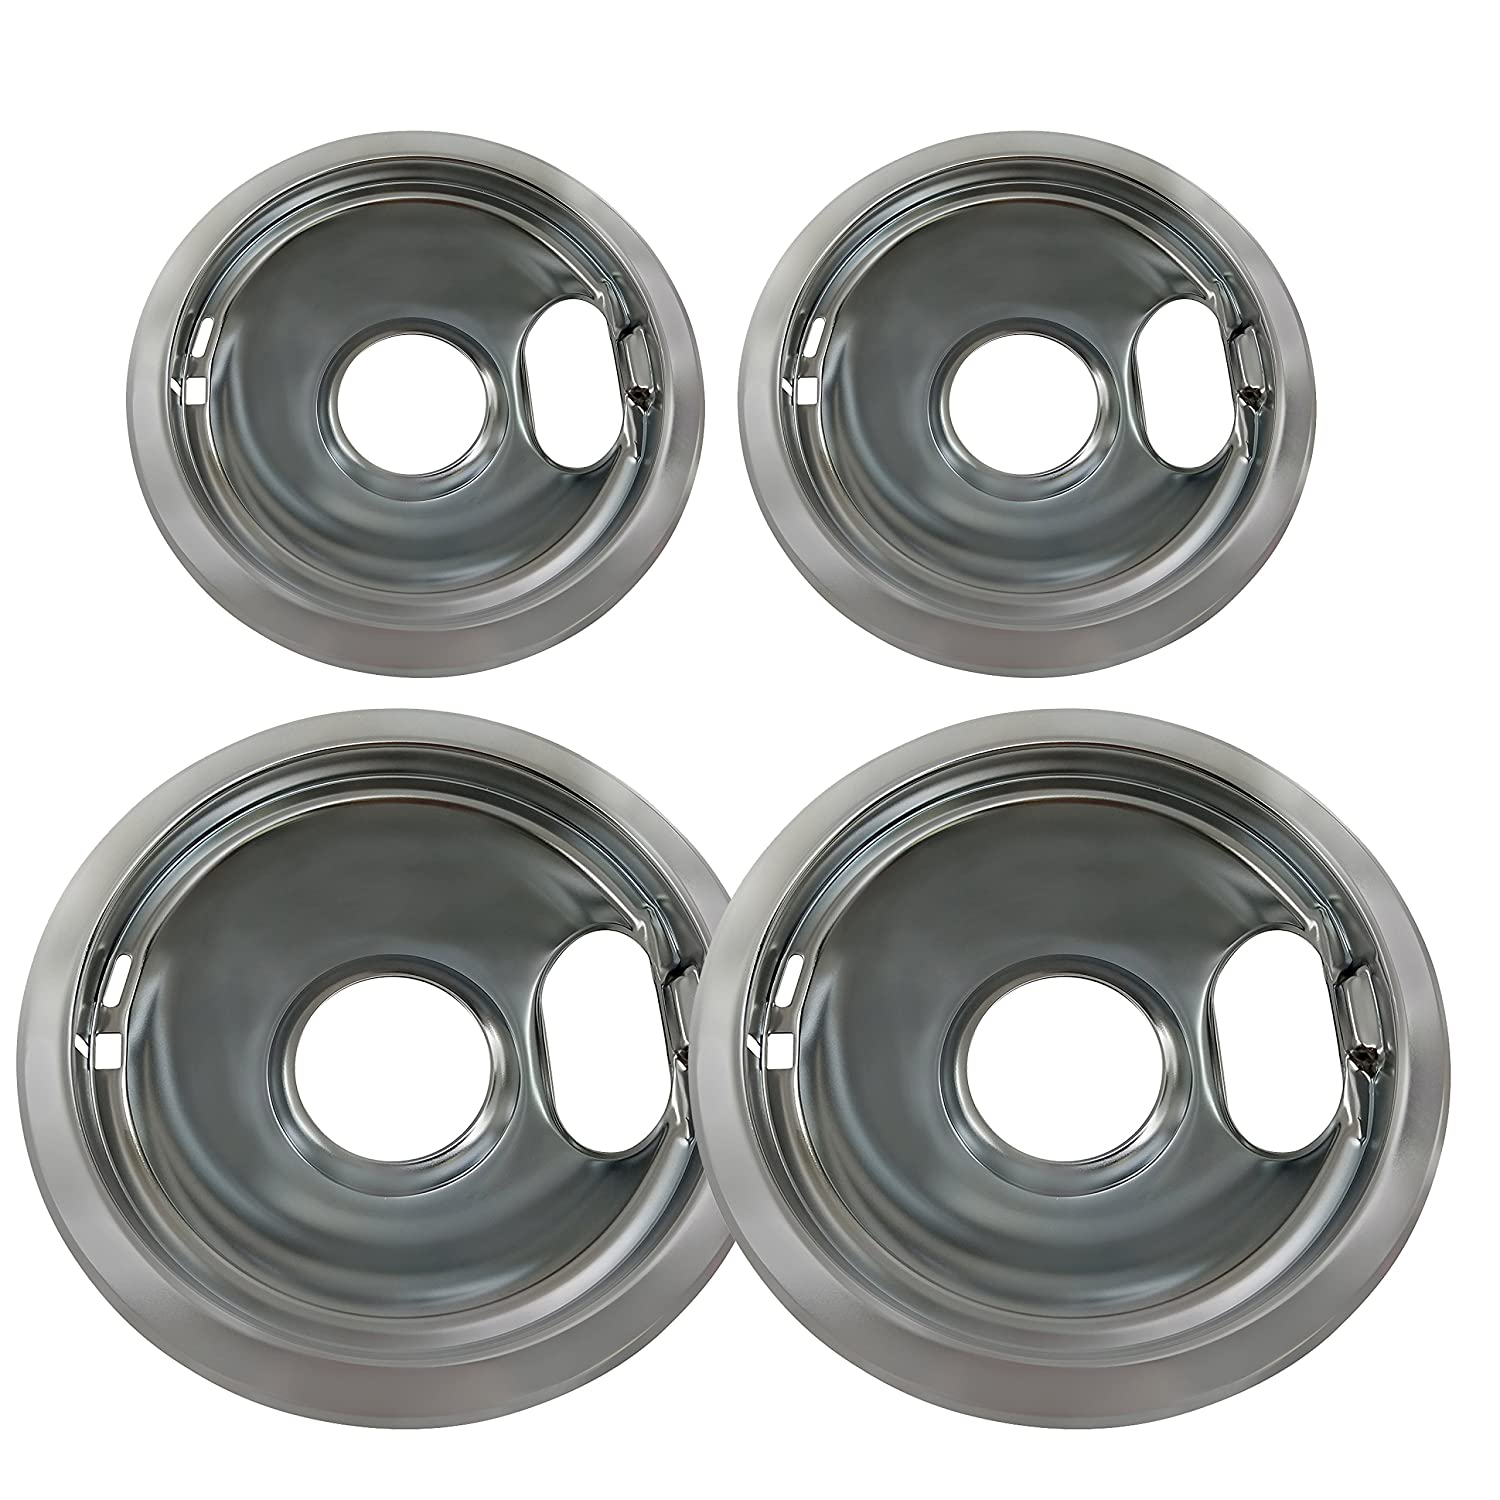 4 Pack Replacement For Whirlpool W10278125 Electric Range